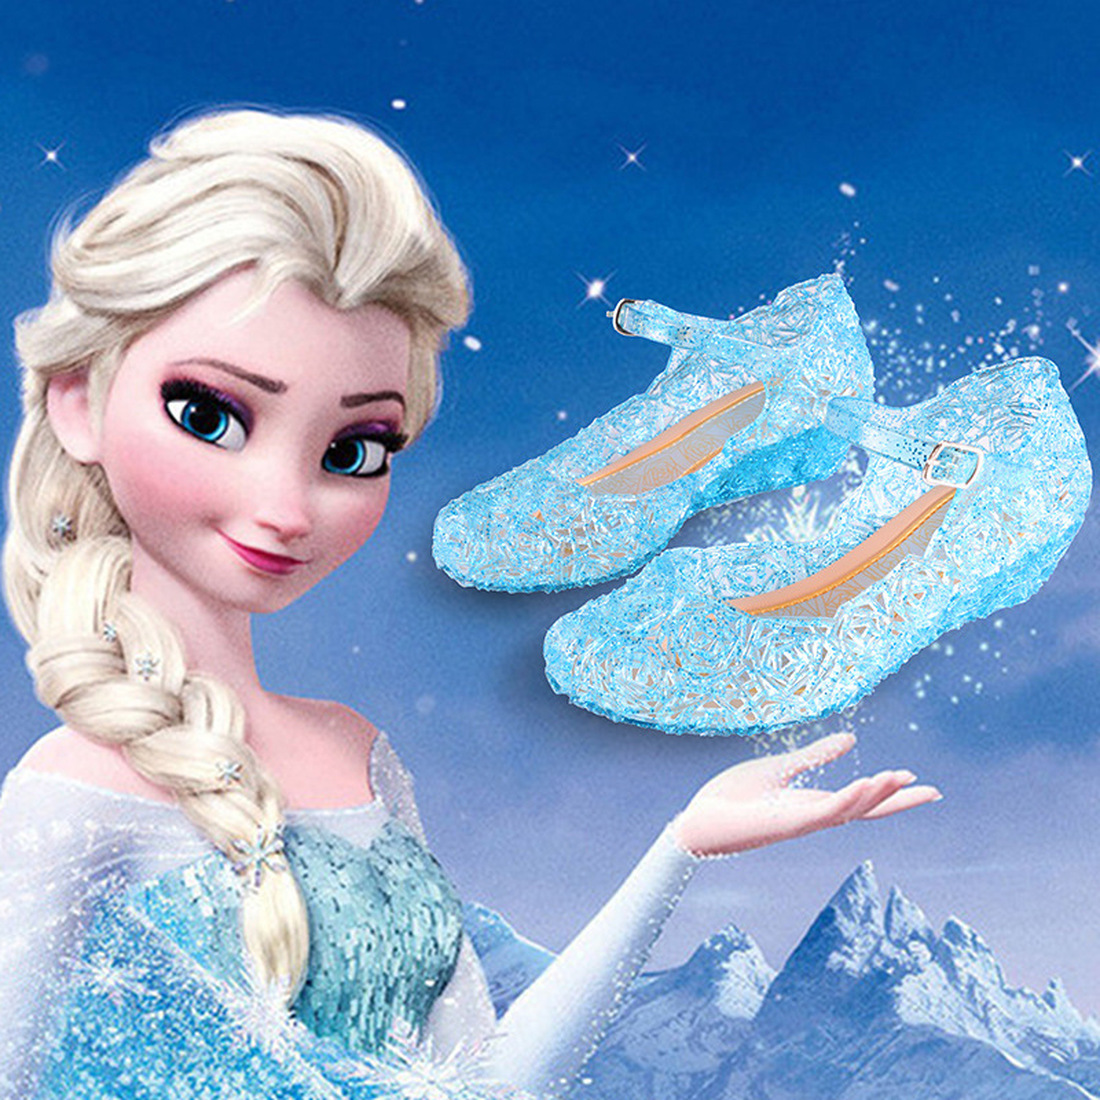 Girl Sandals Summer Queen Elsa Princess Crystal Shoes Frozen Kids Mules&Clogs Transparent Plastic Beach Shoes Sofia Kids Sandals